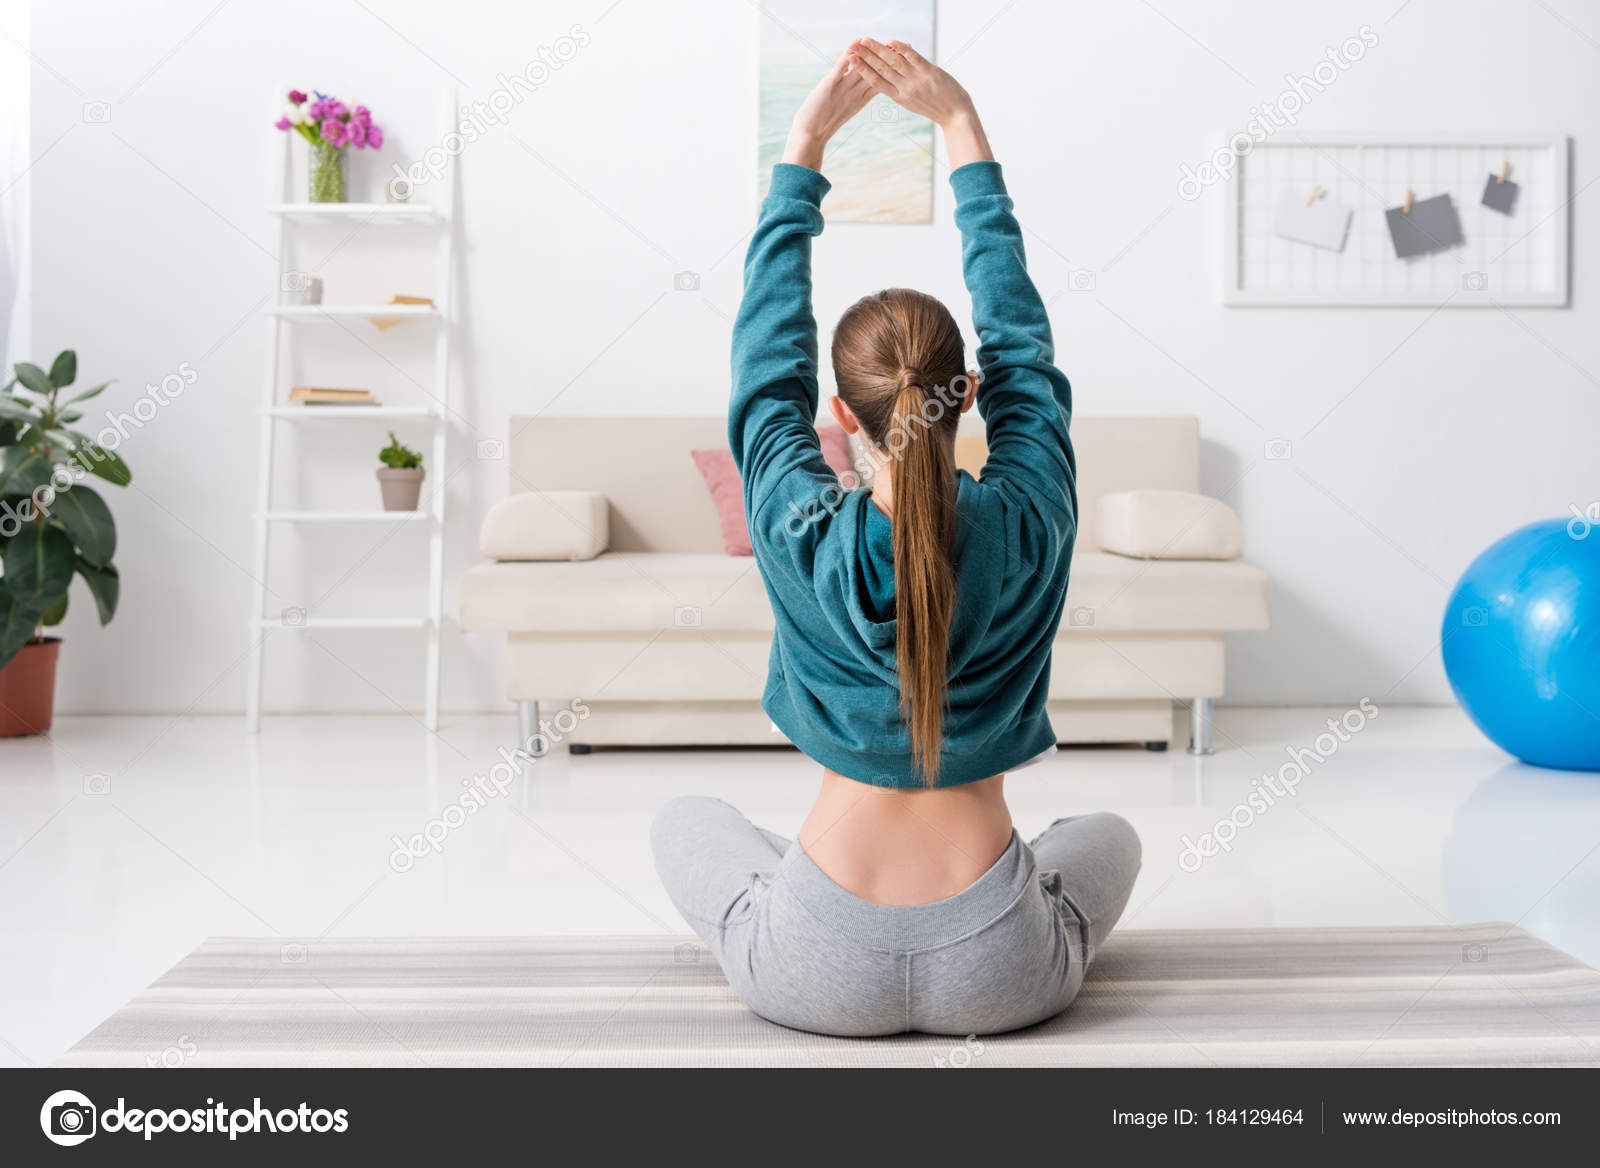 Young Girl Practices Yoga In Parvatasana Lotus Position